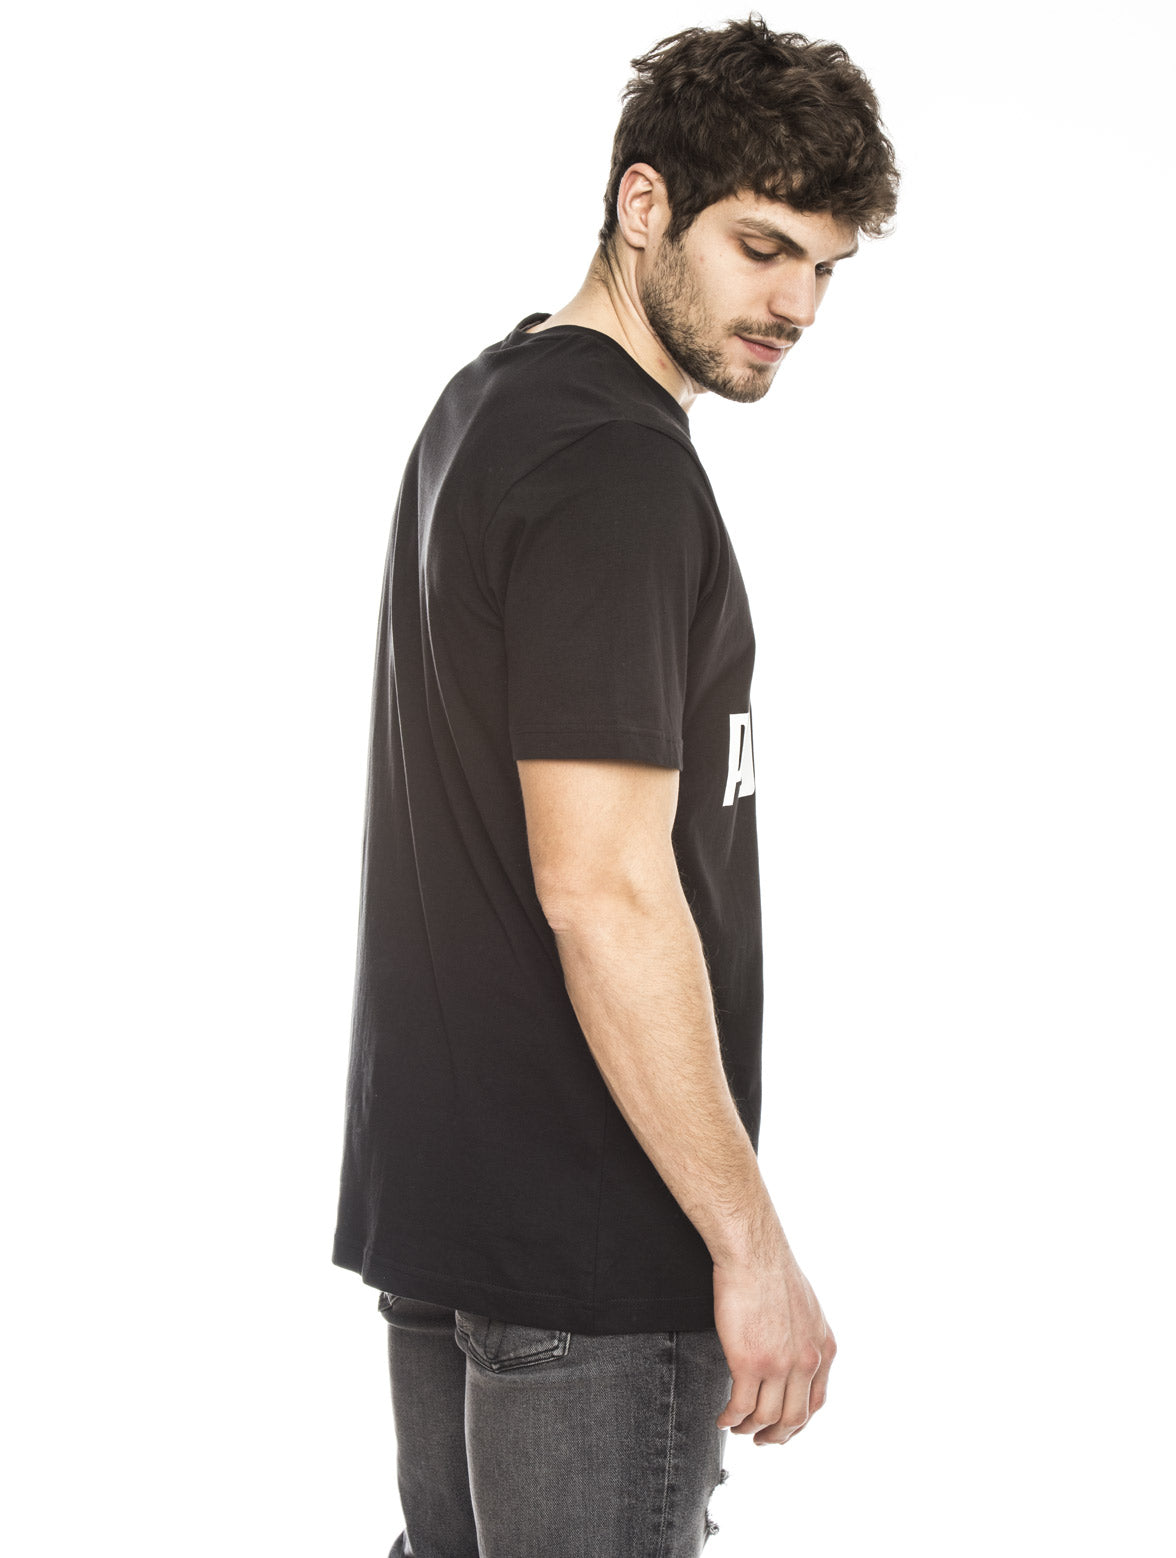 ARCHIVE LOGO COTTON TEE IN BLACK